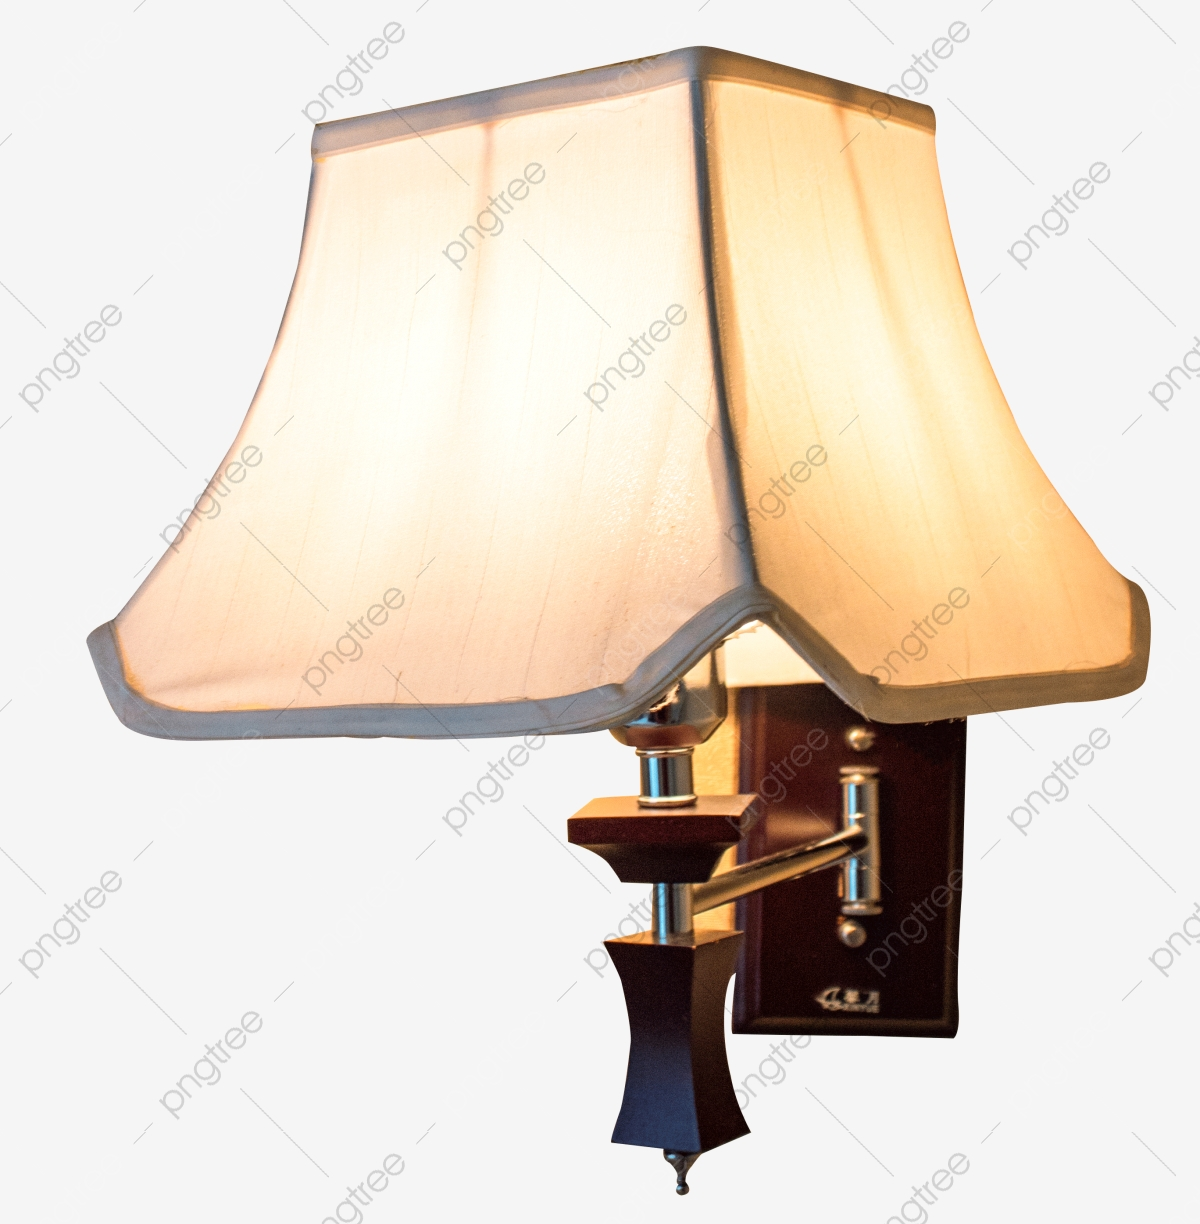 gambar lampu gantung dinding retro lampu dinding peralatan lampu lampu bilik tidur png dan psd untuk muat turun percuma https ms pngtree com freepng wall retro lighting hanging lamp 4612470 html